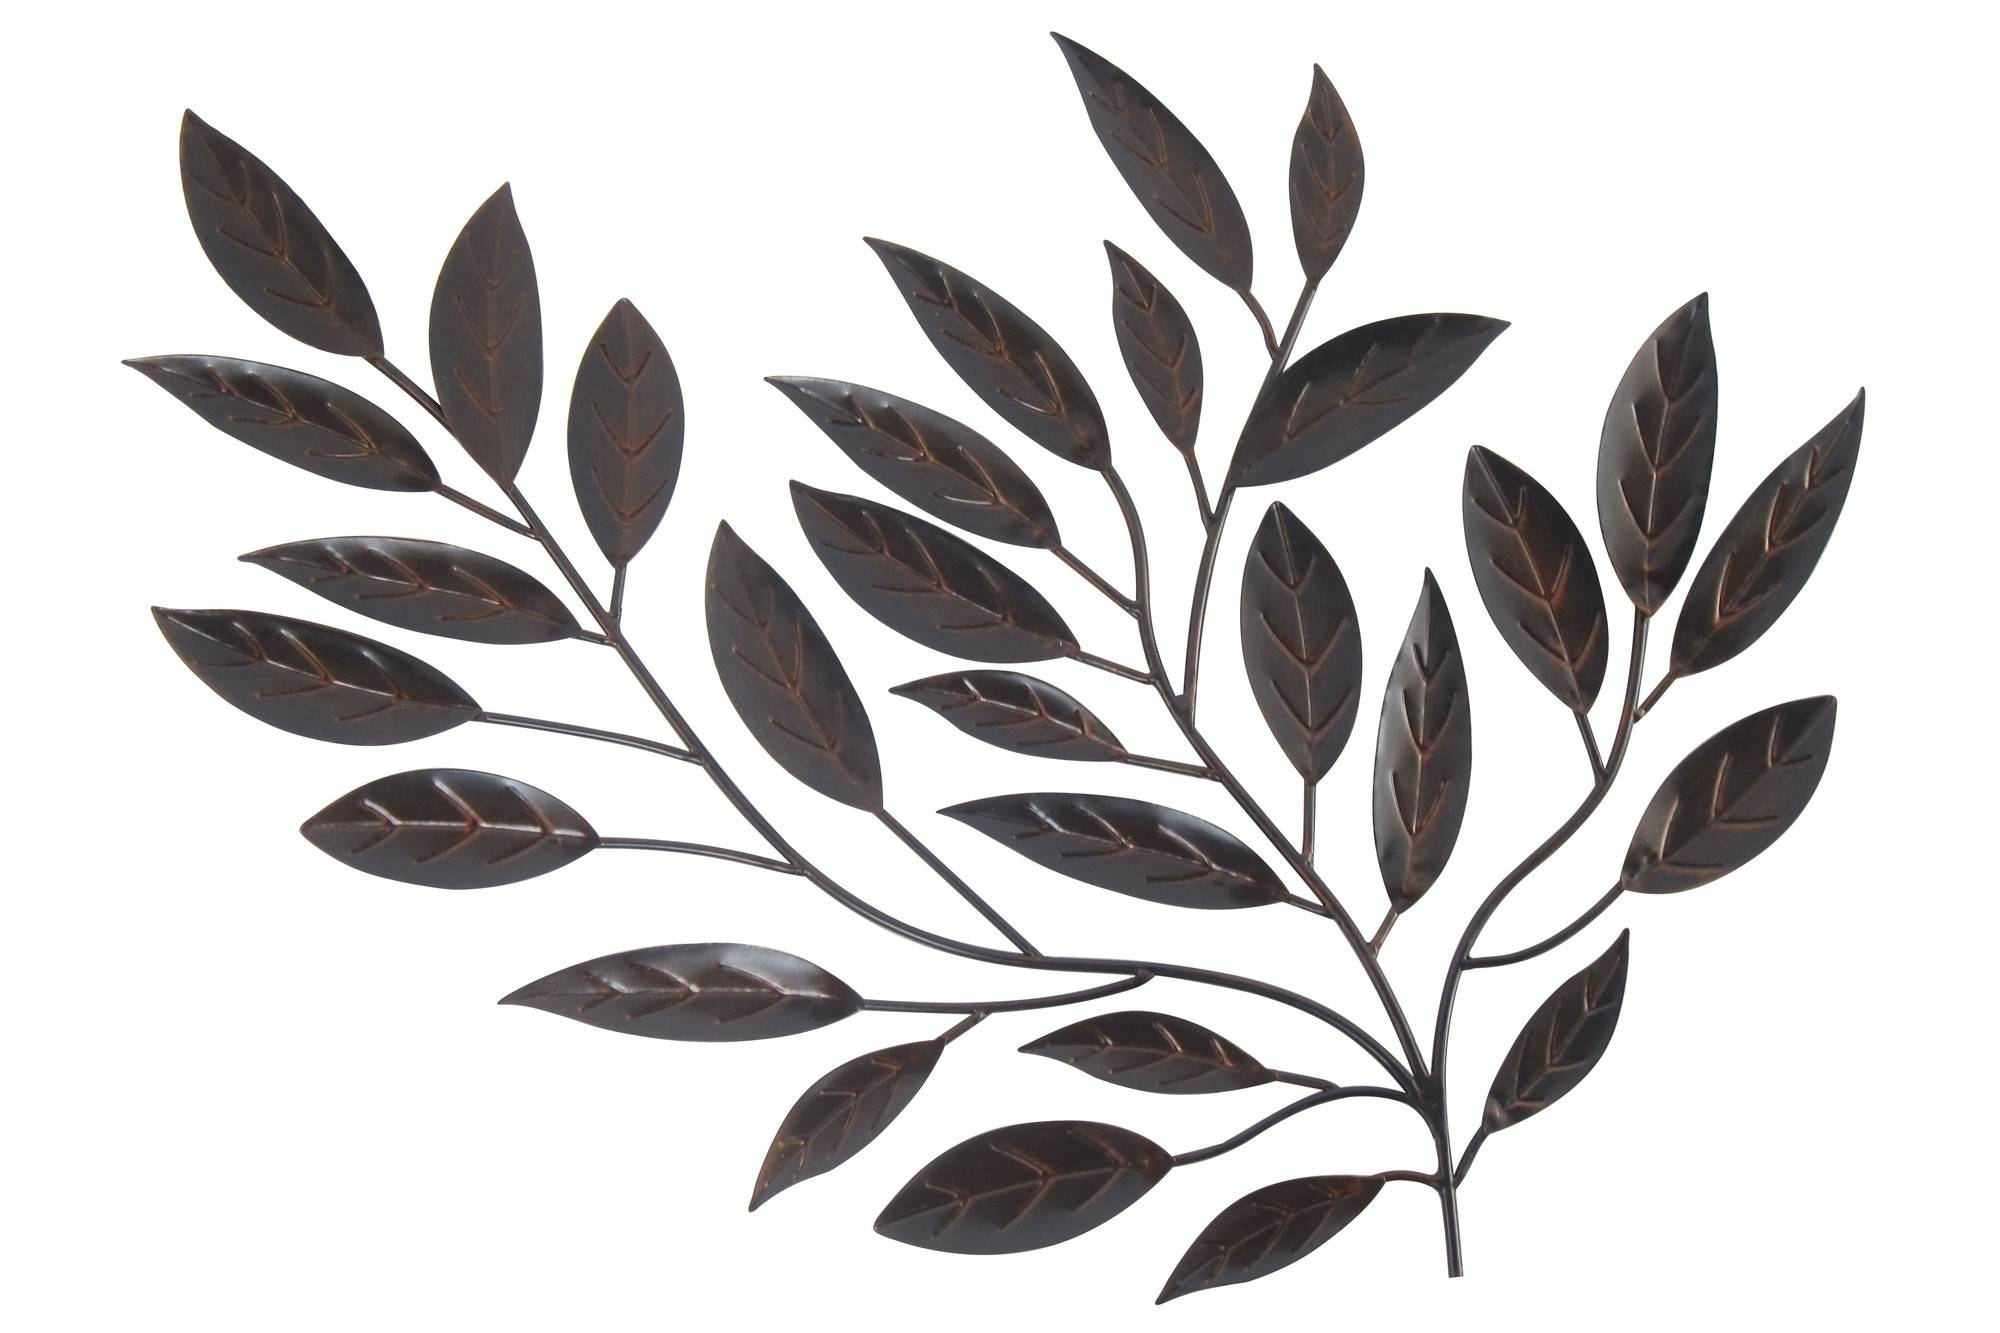 Forged Metal Leaves – Floral Metal Wall Art With Regard To Recent Leaf Metal Wall Art (View 5 of 20)